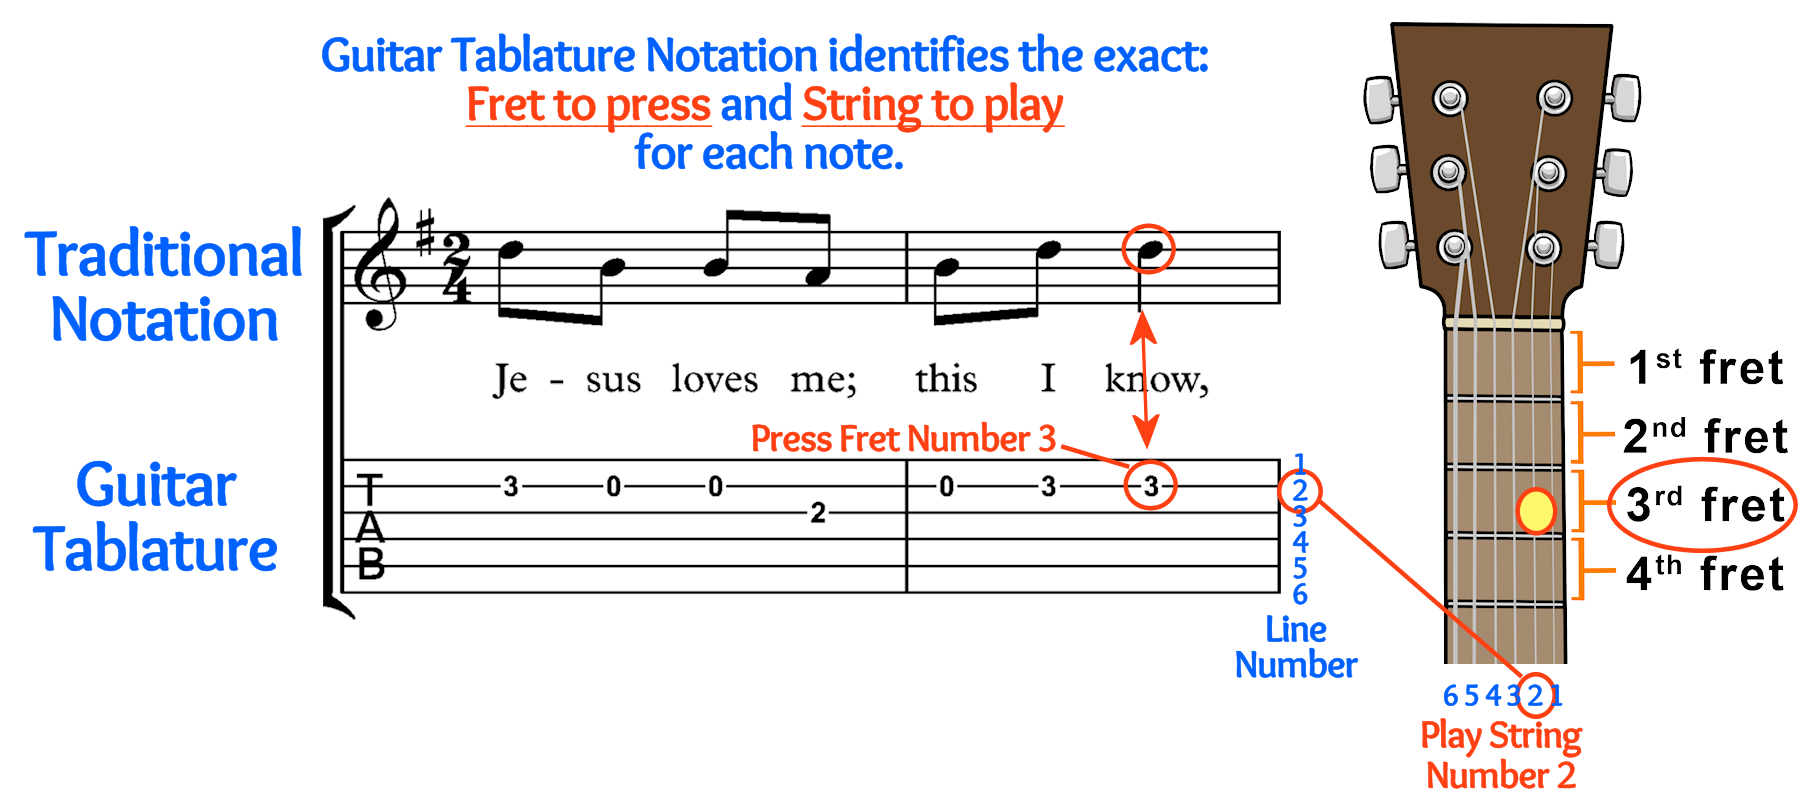 Tablature Example For Brochure V7b Trans Small